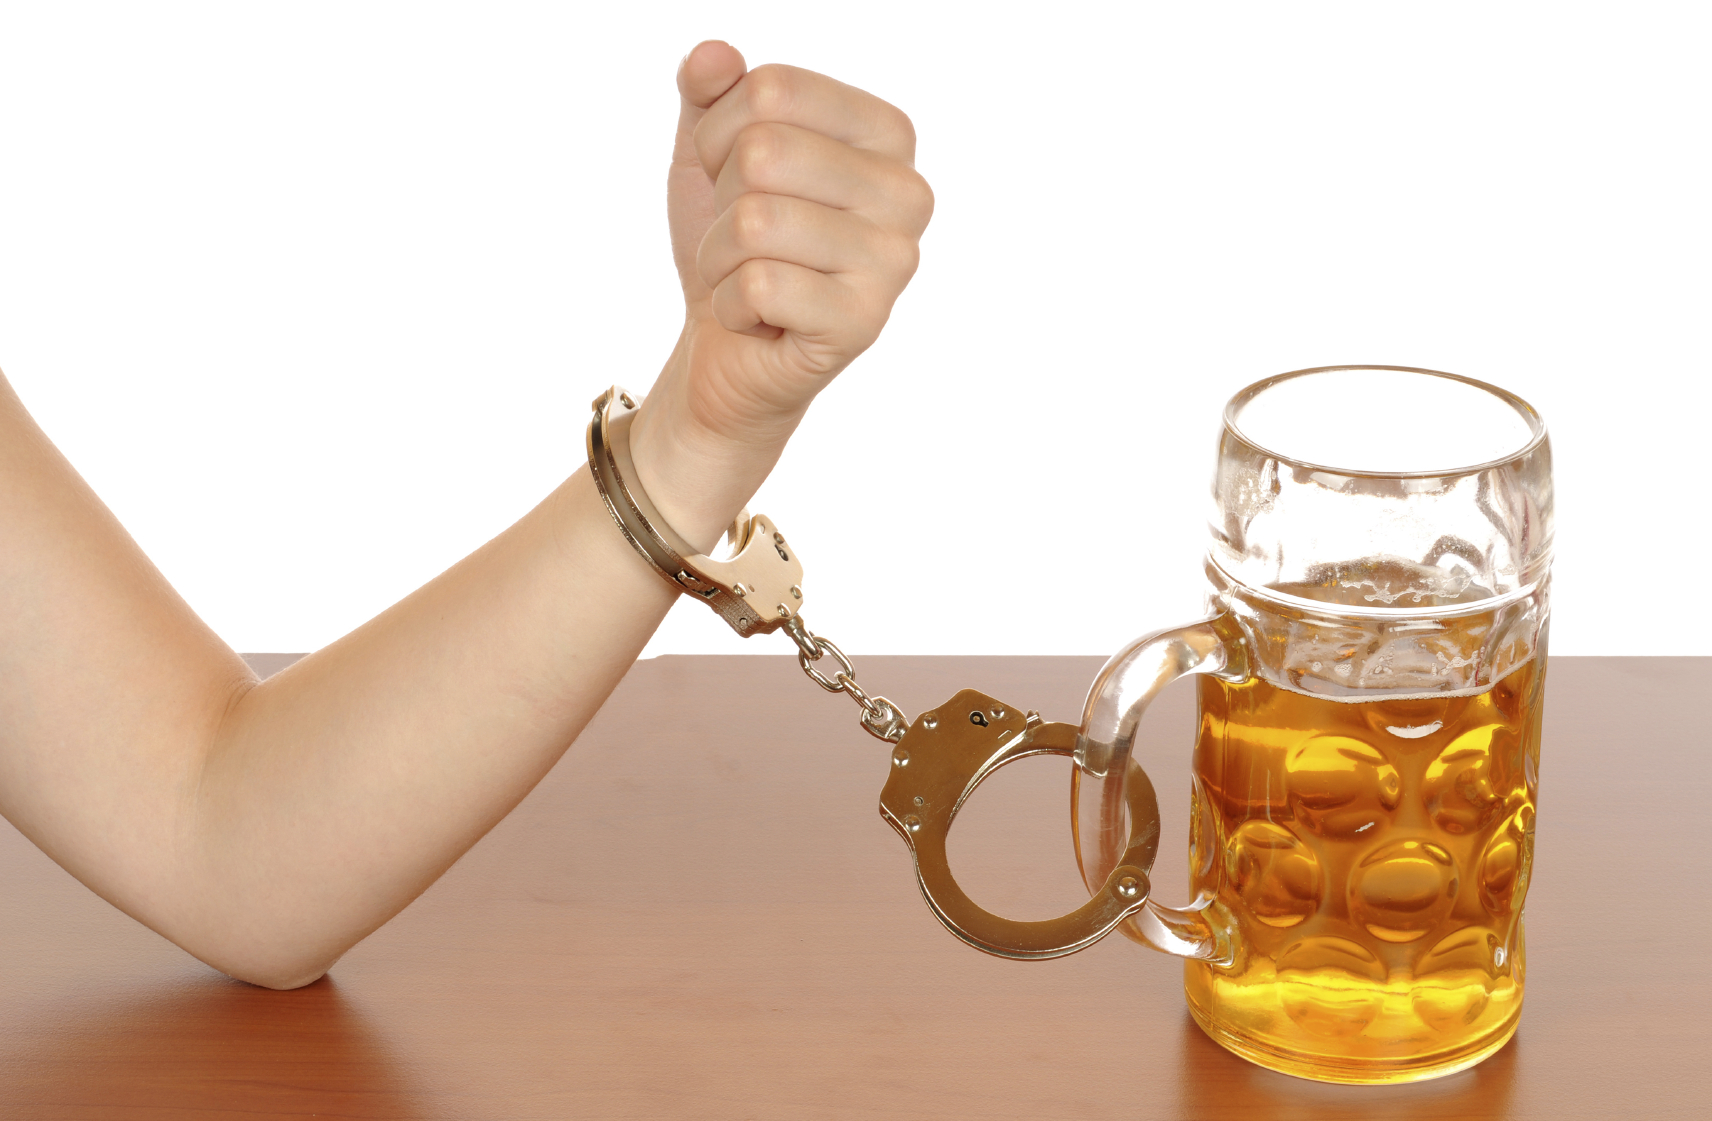 Alcoholism in society